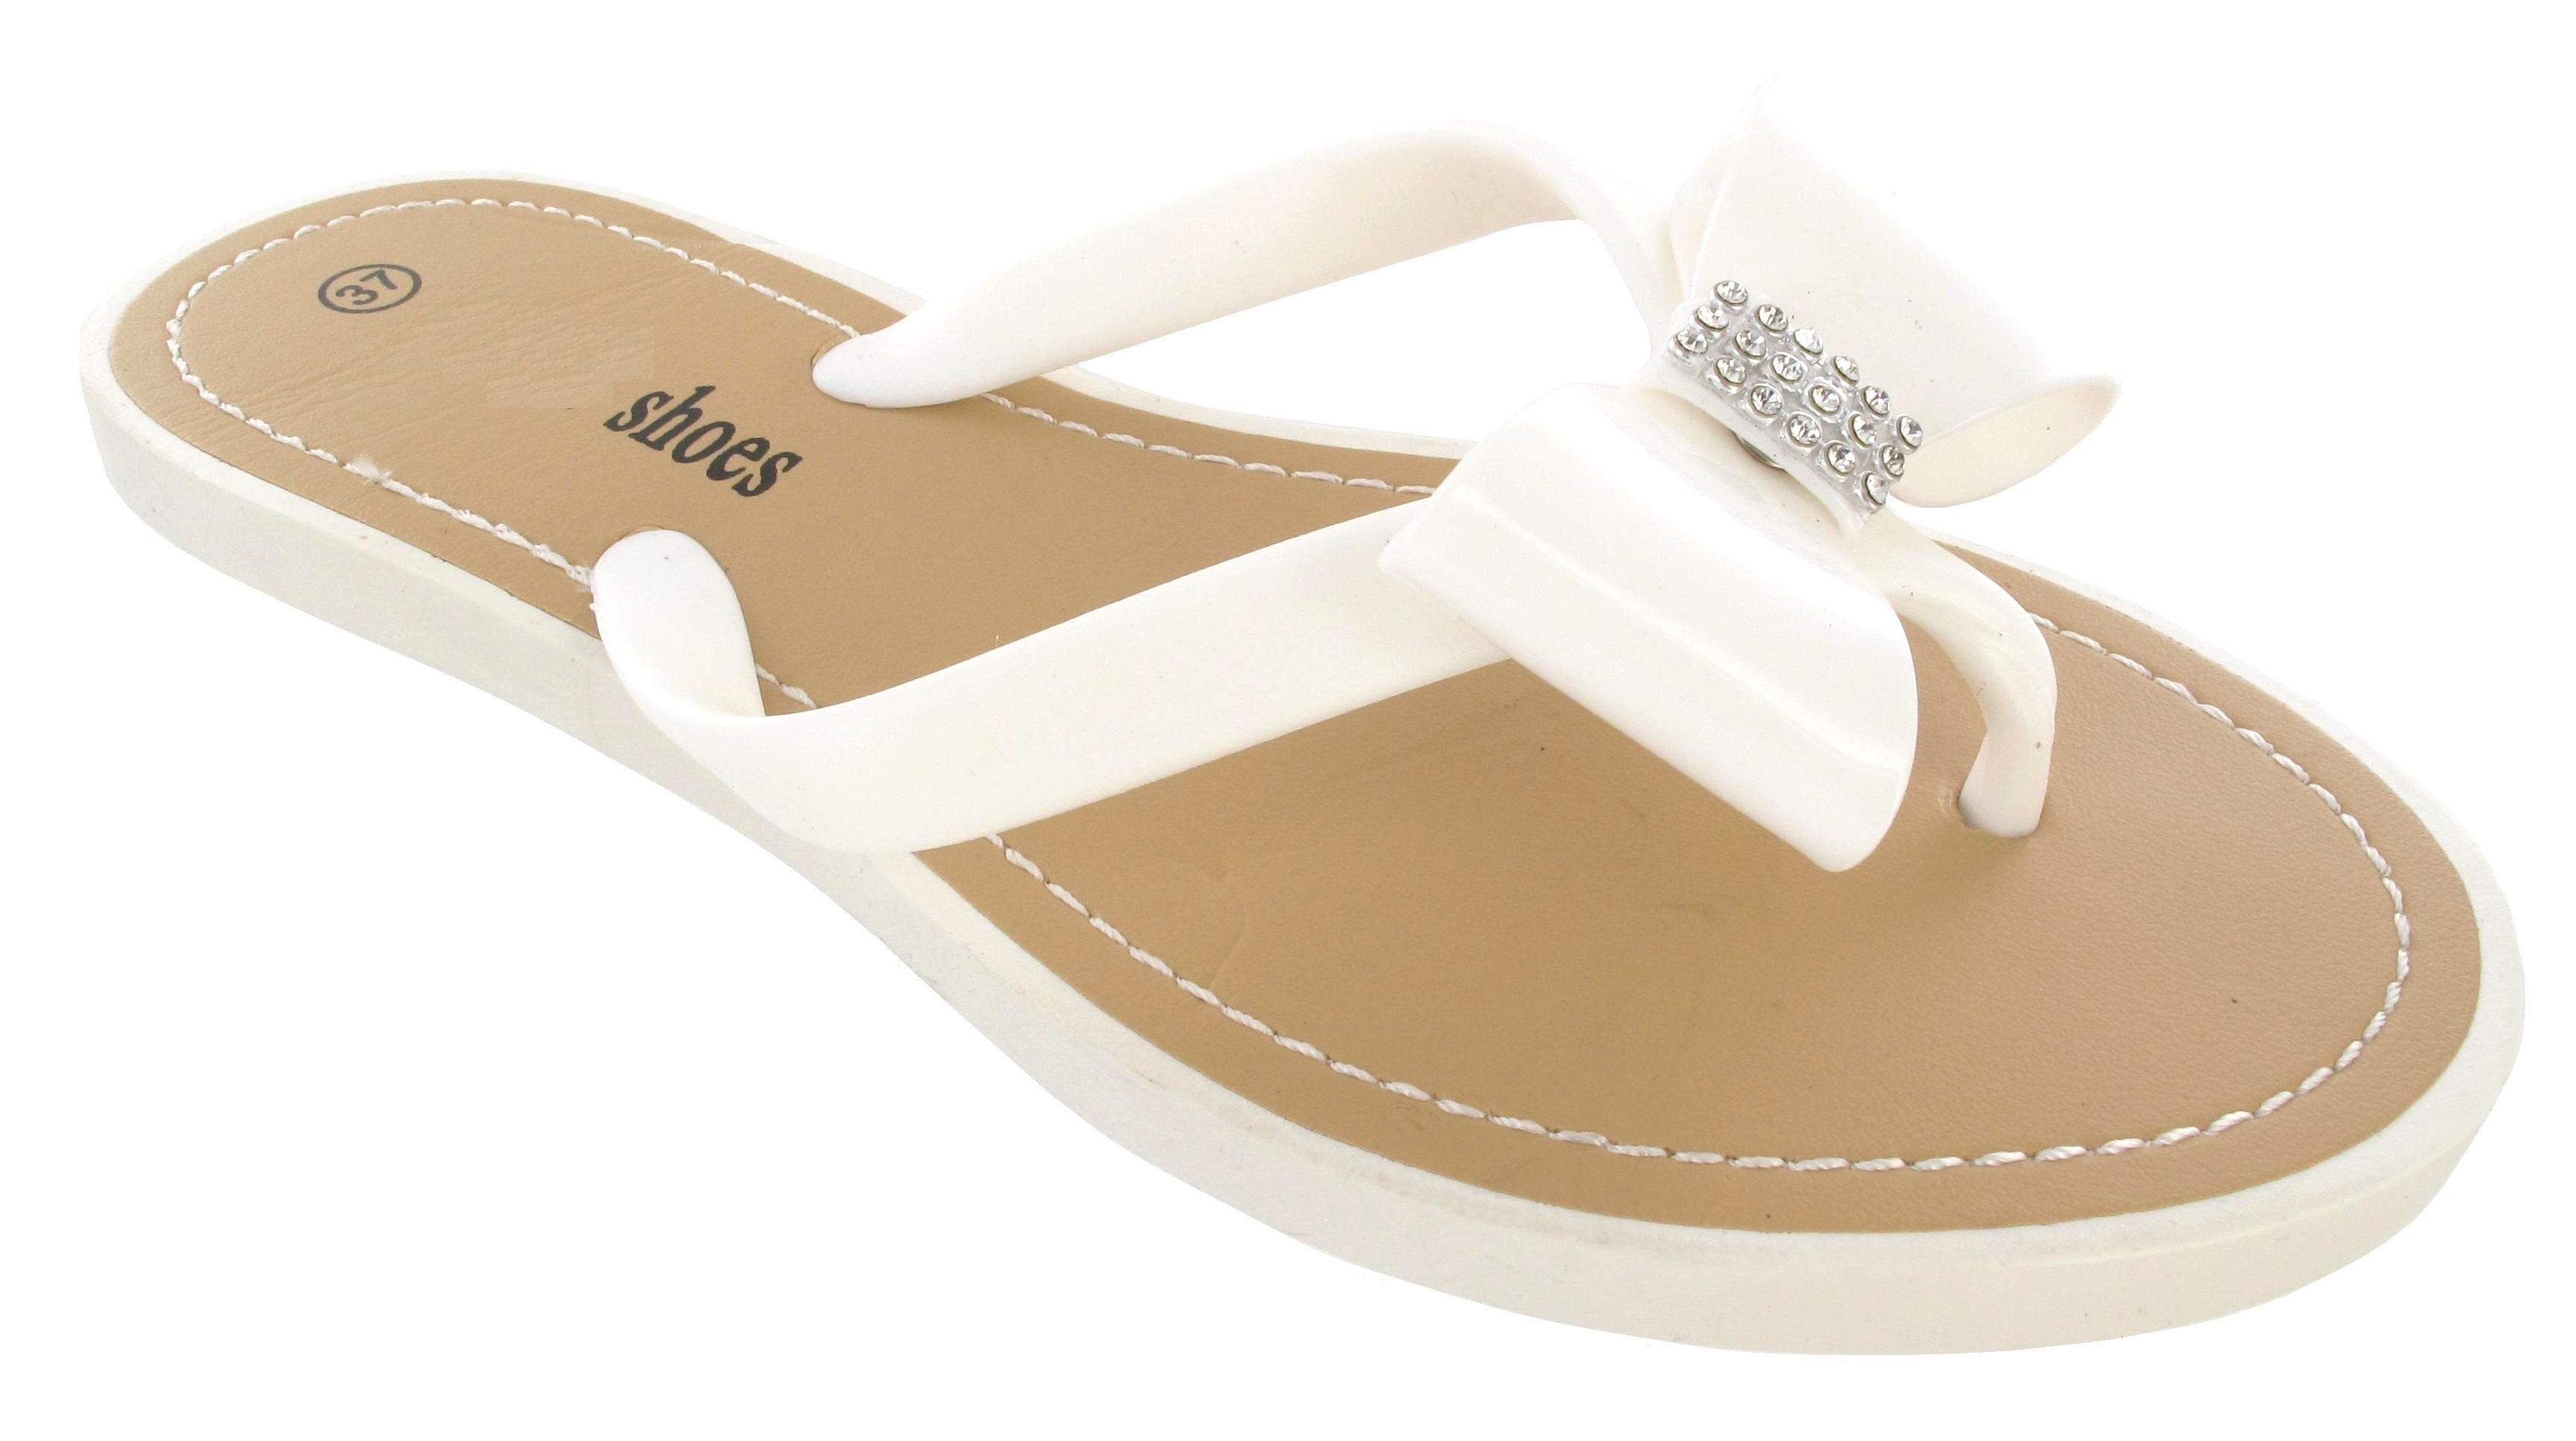 d0726bf34444 Jelly flip flops - Sandals   Beach Shoes   Mince His Words